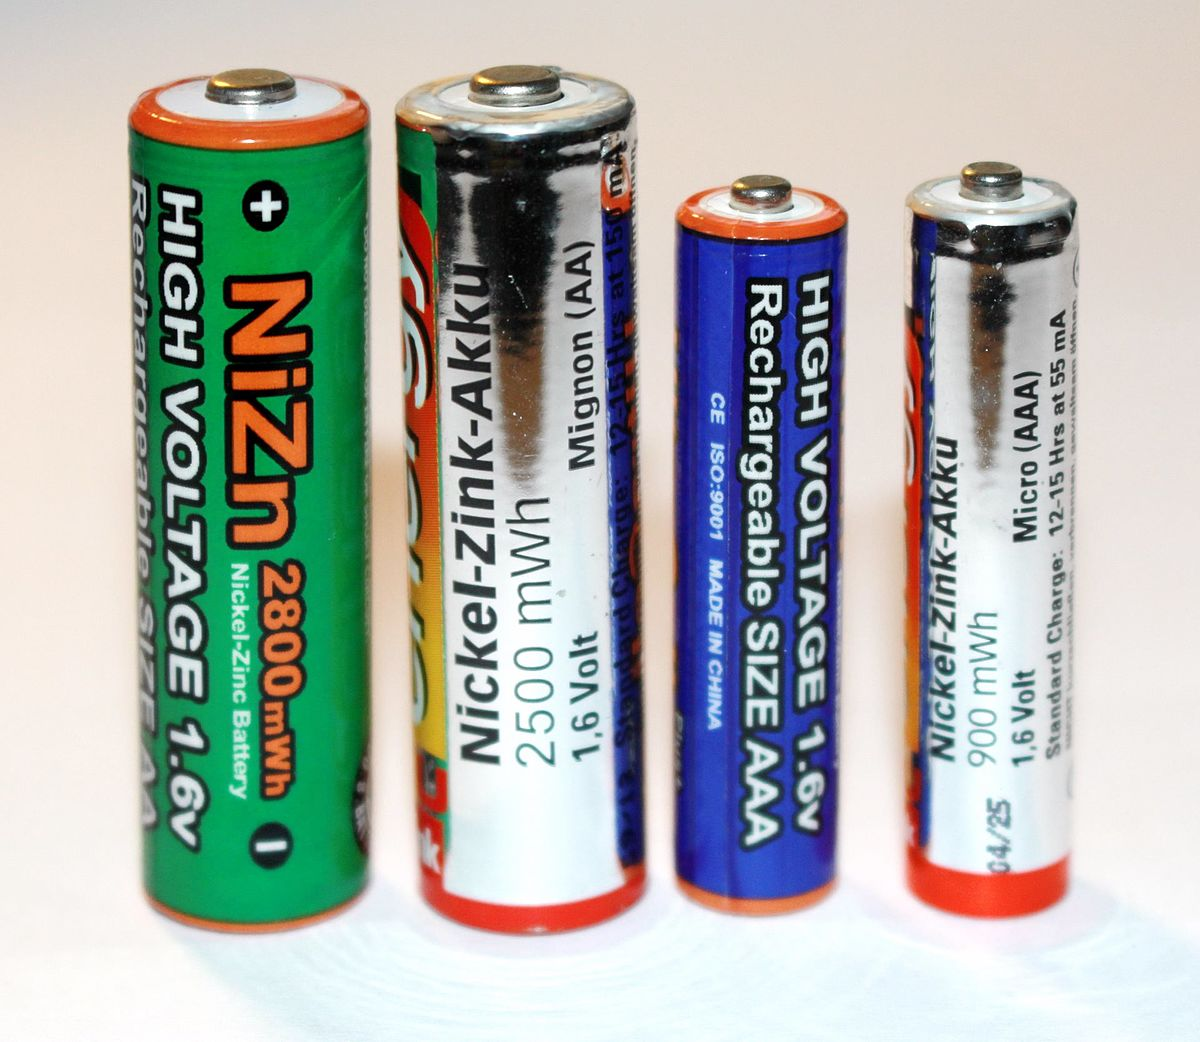 Nickelzinc Battery Wikipedia Nimh Charger Circuit D Mohankumar Chargers